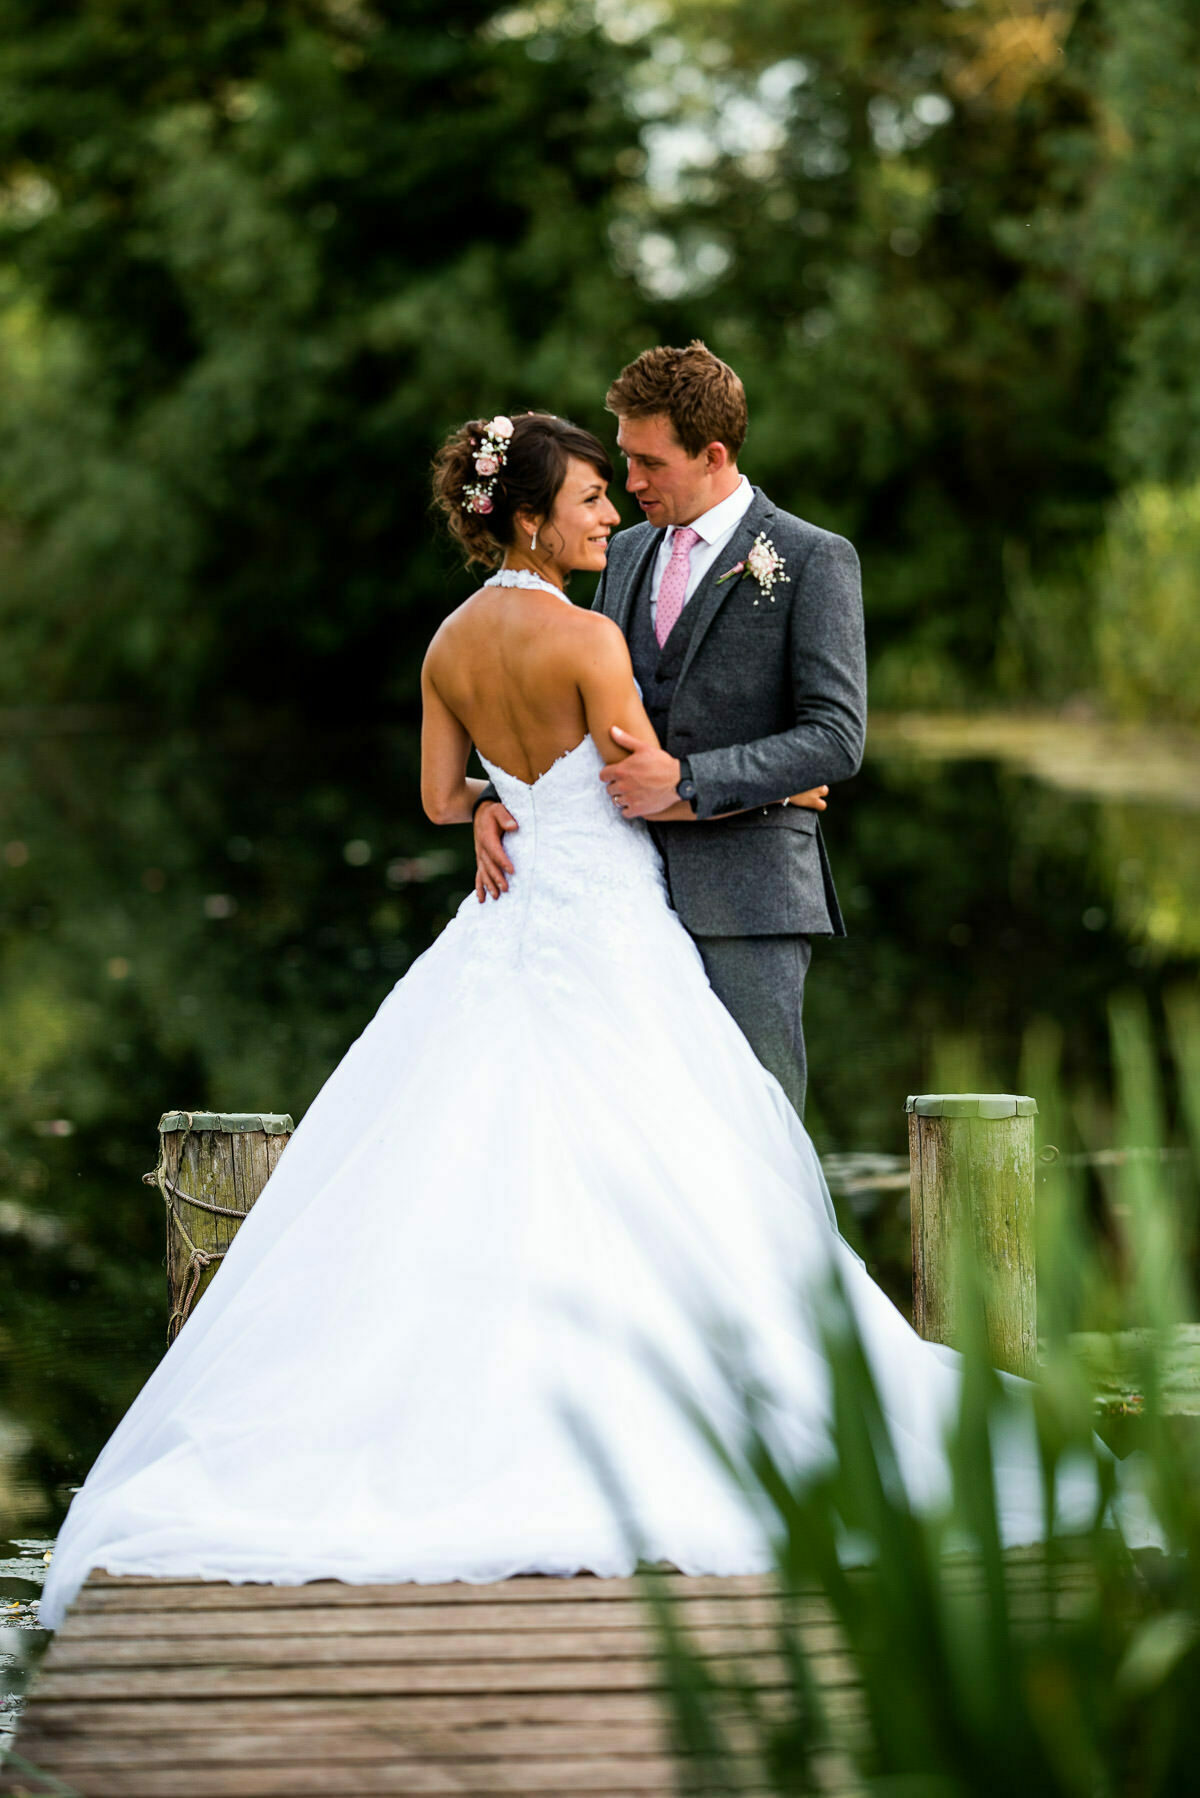 Wedding Portraits at Lyde Arundel